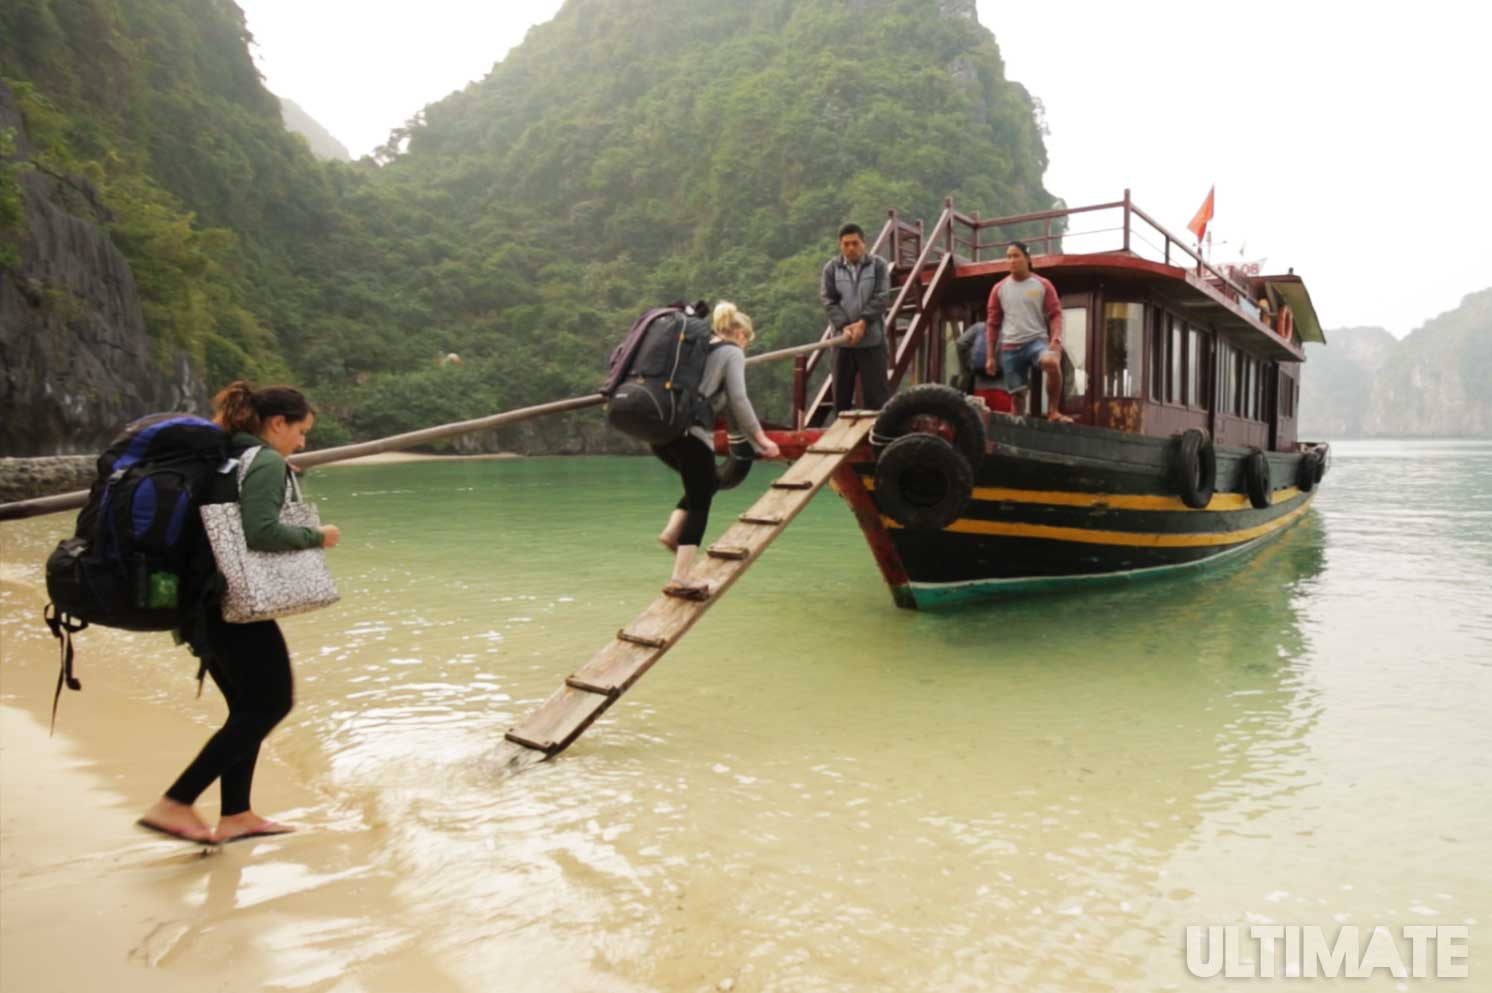 Travelling around Vietnam is easy for backpackers